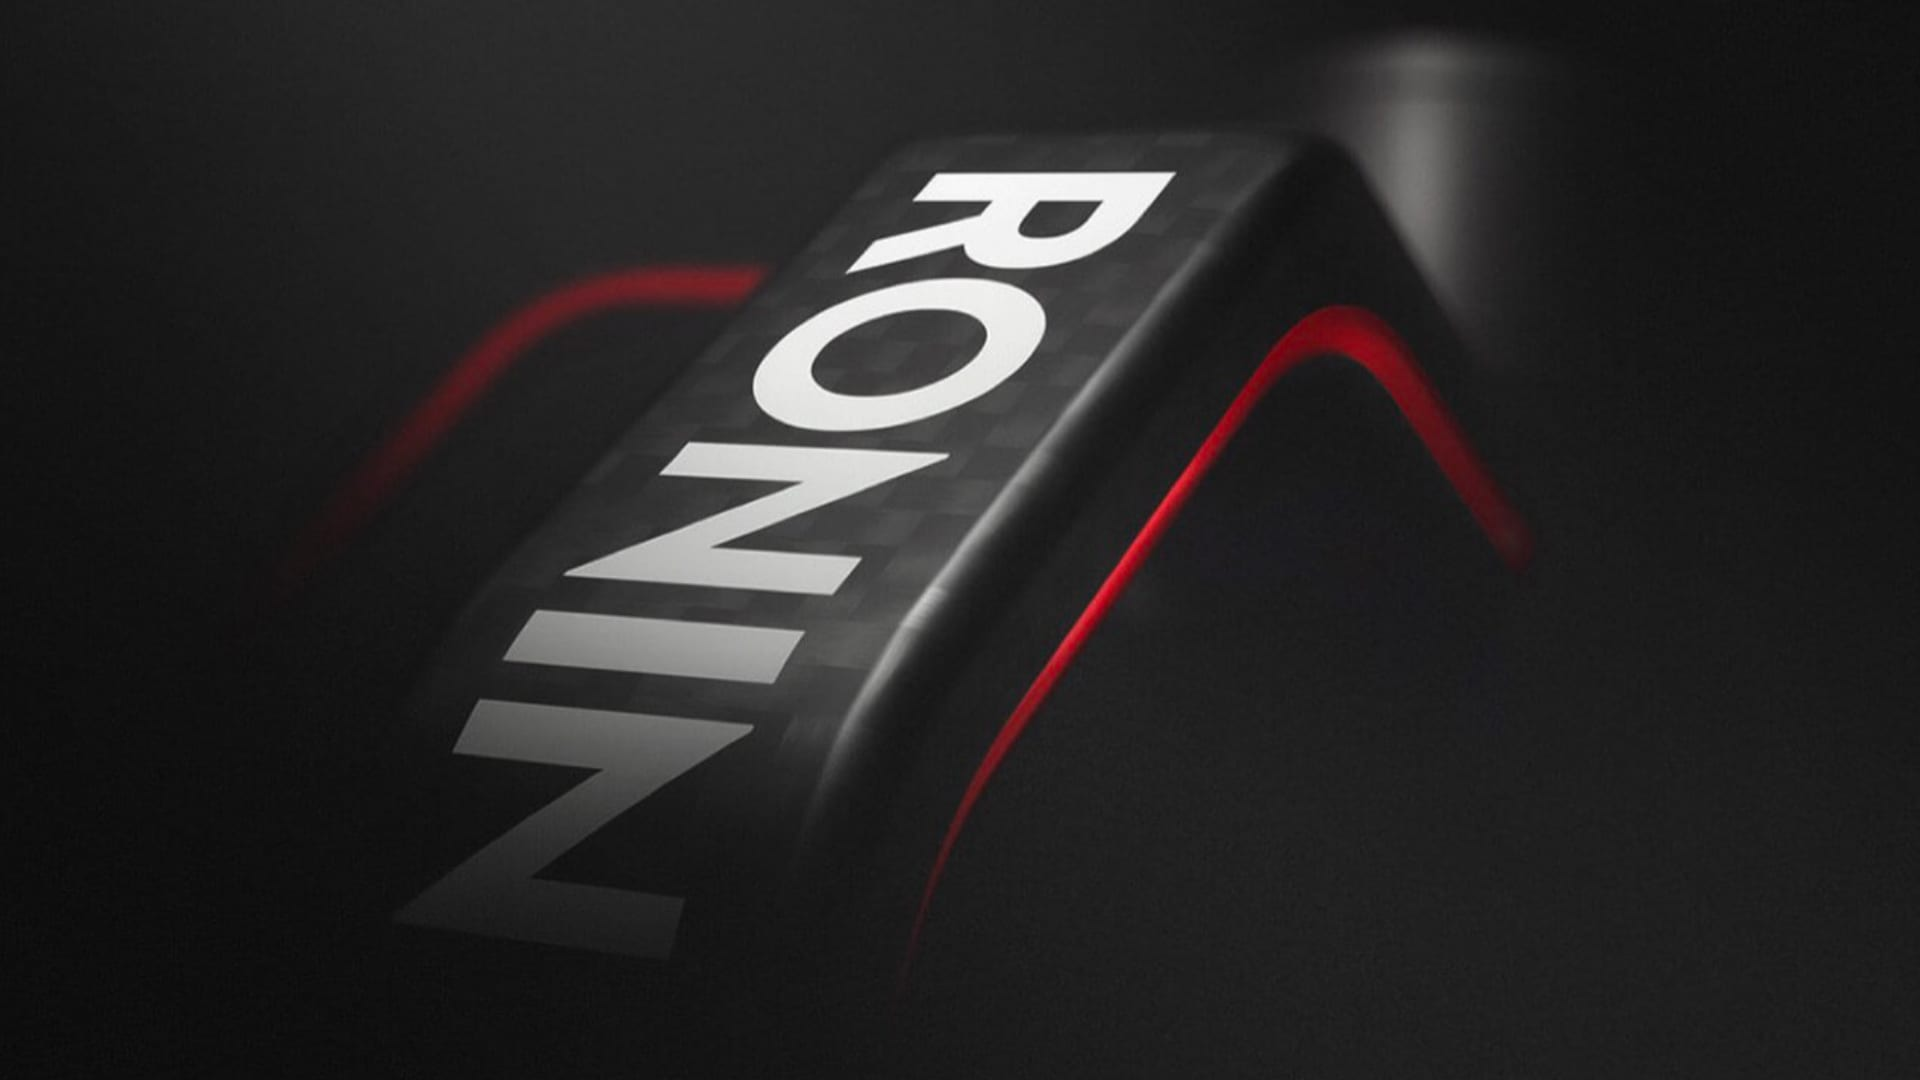 DJI Ronin RS2 release date is September 9th, 2020 at 10:30 p.m. EDT